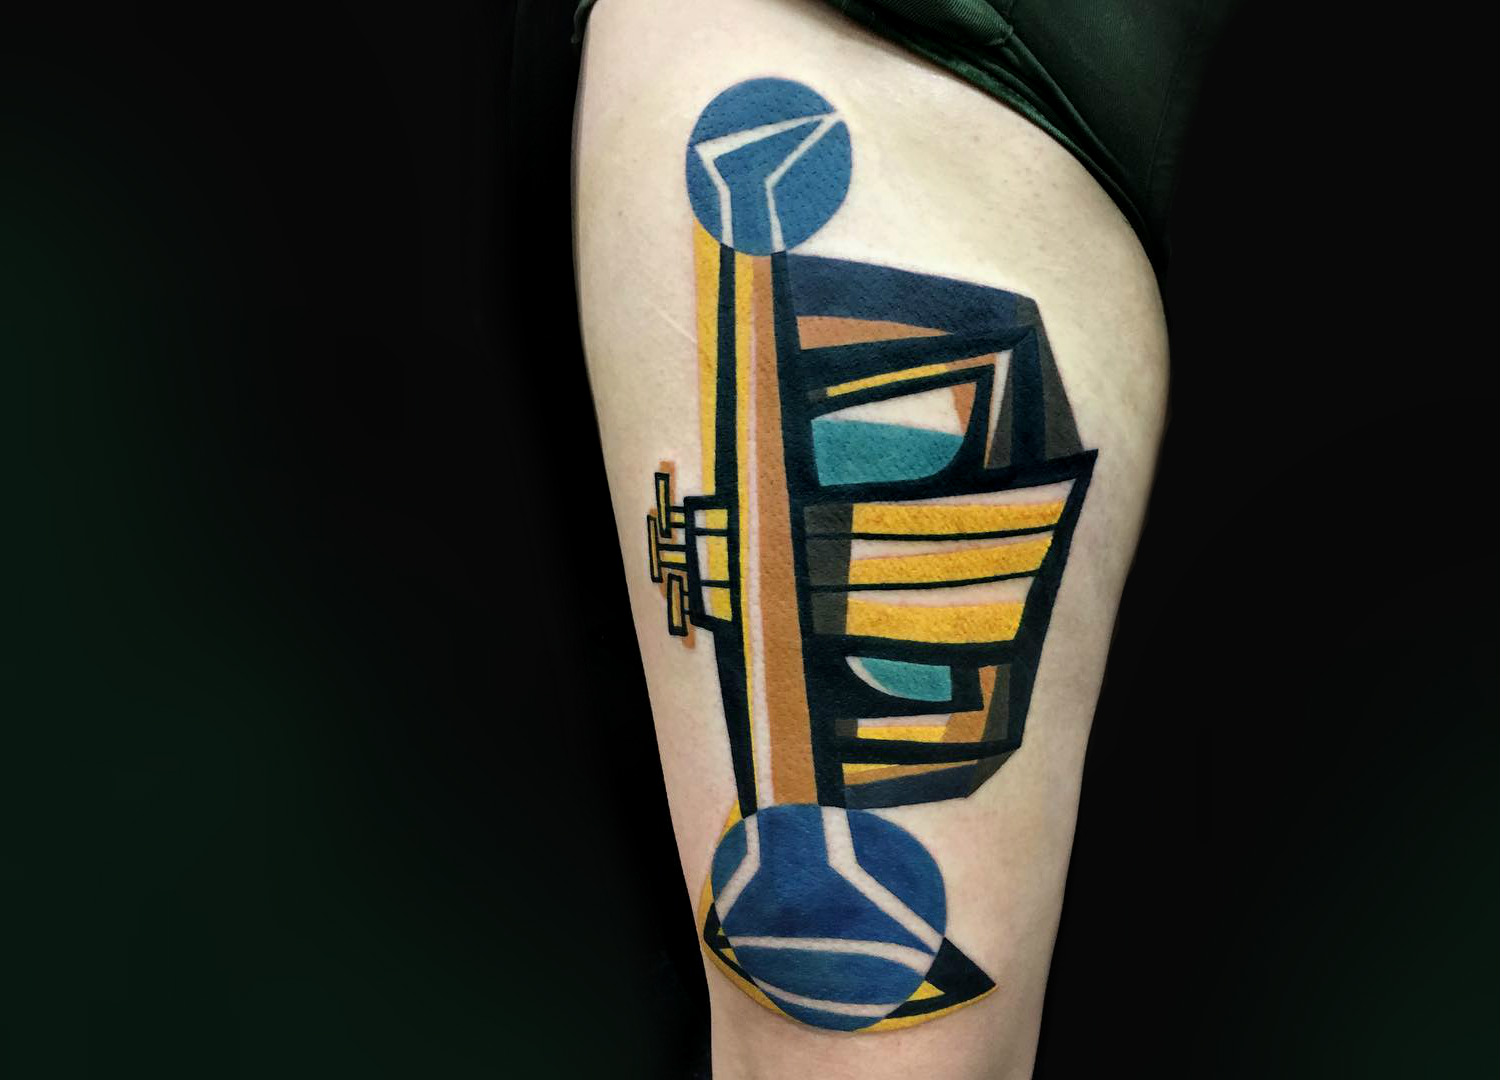 Contemporary art trumpet tattoo by Mike Boyd